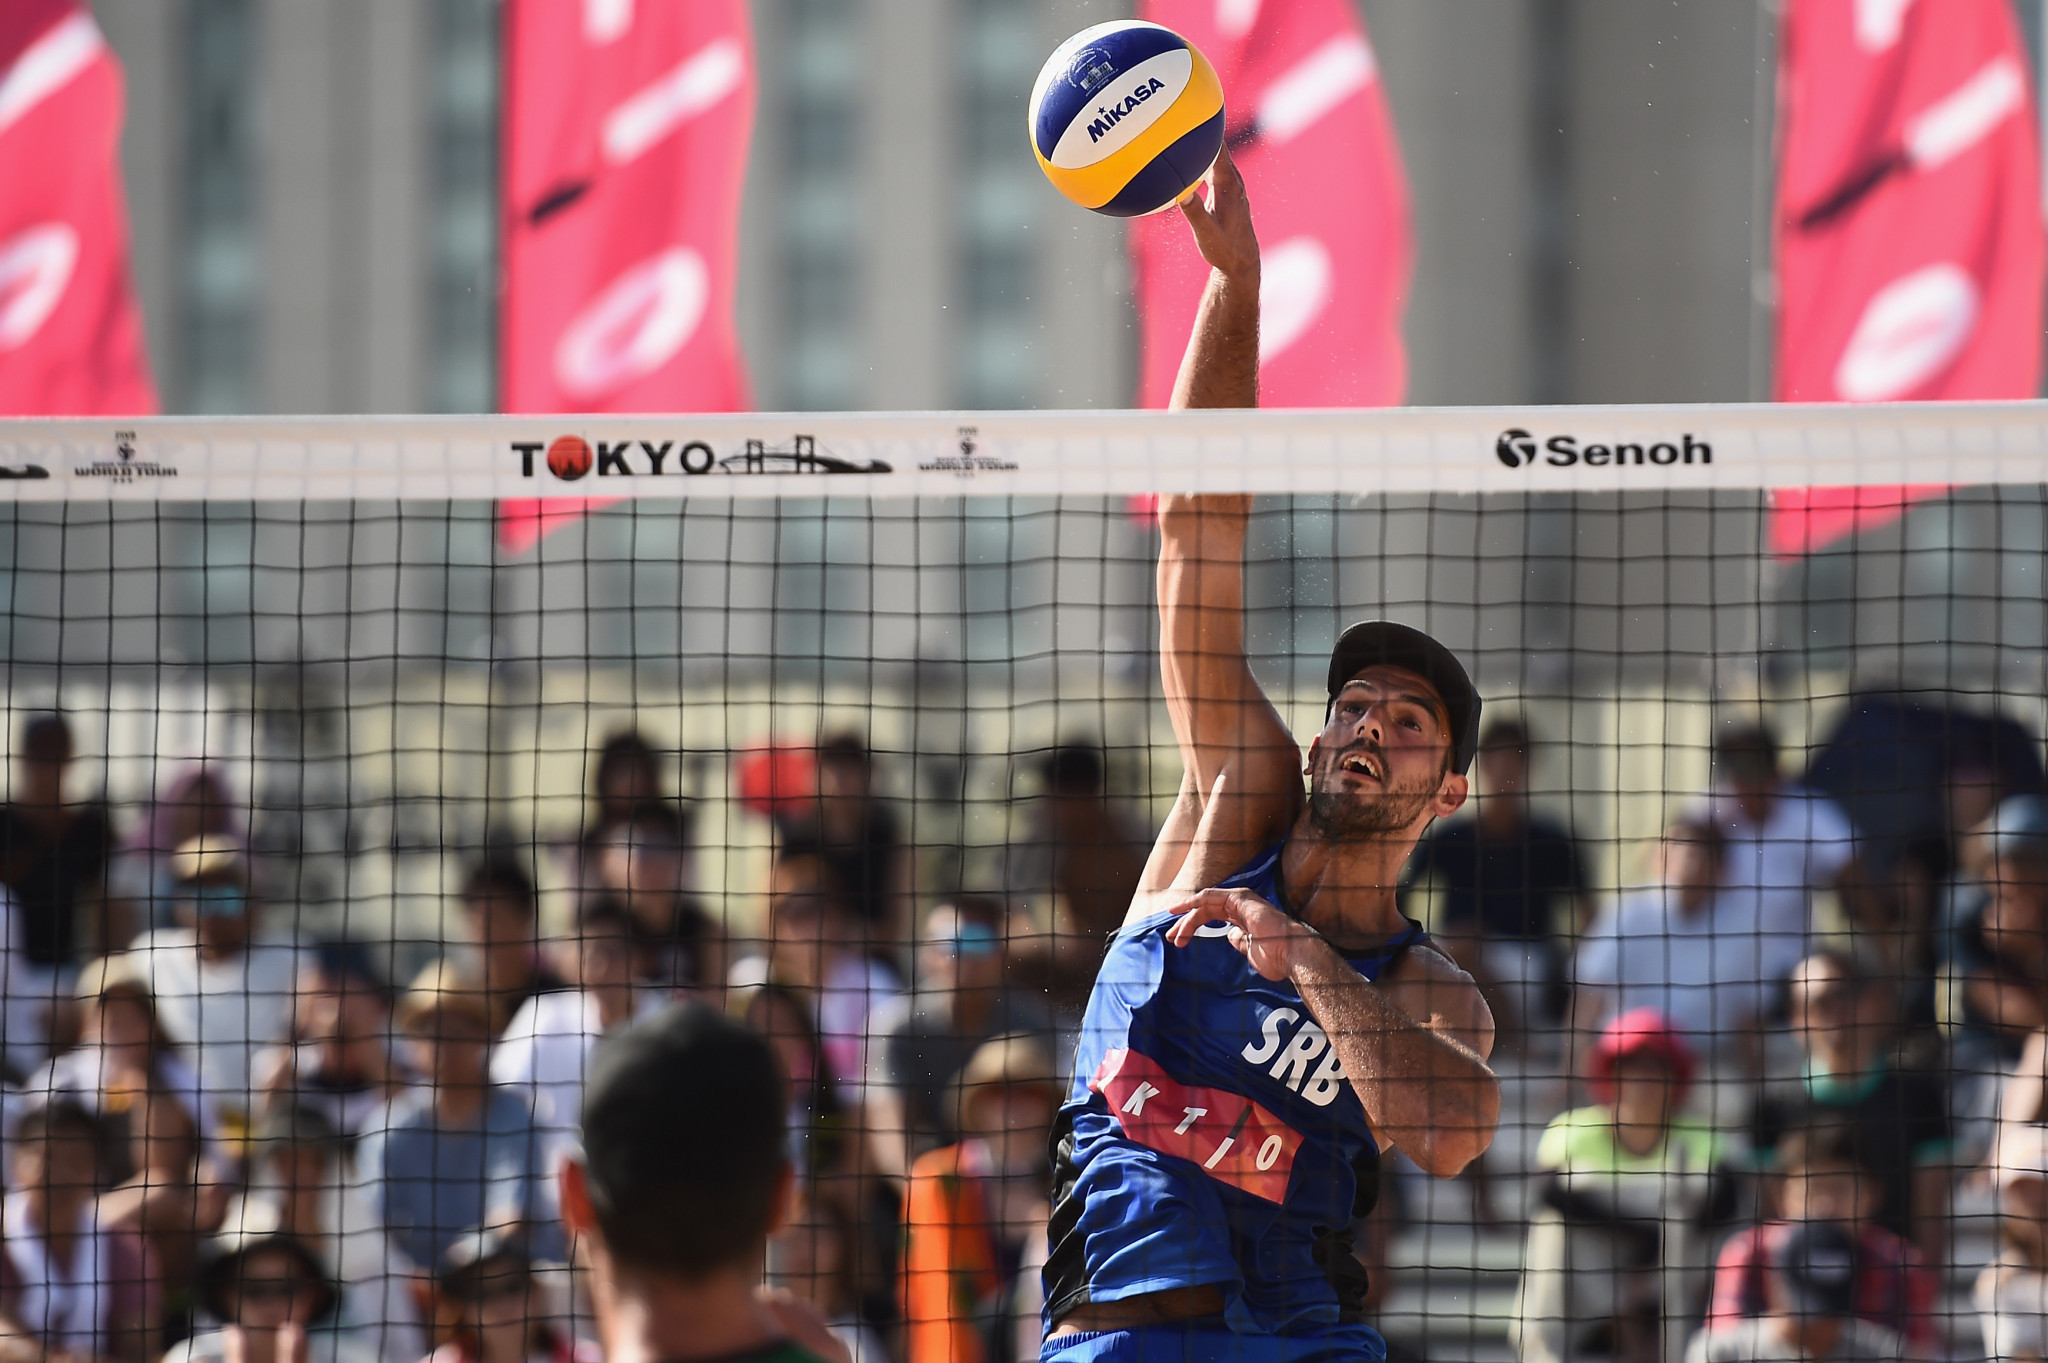 Serbia's Stefan Basta, pictured, and Lazar Kolaric, the second seeds, won their match today at the FIVB World Tour event in Qinzhou in straight sets against Turkey's Murat Giginoglu and Volkan Gogtepe ©Getty Images